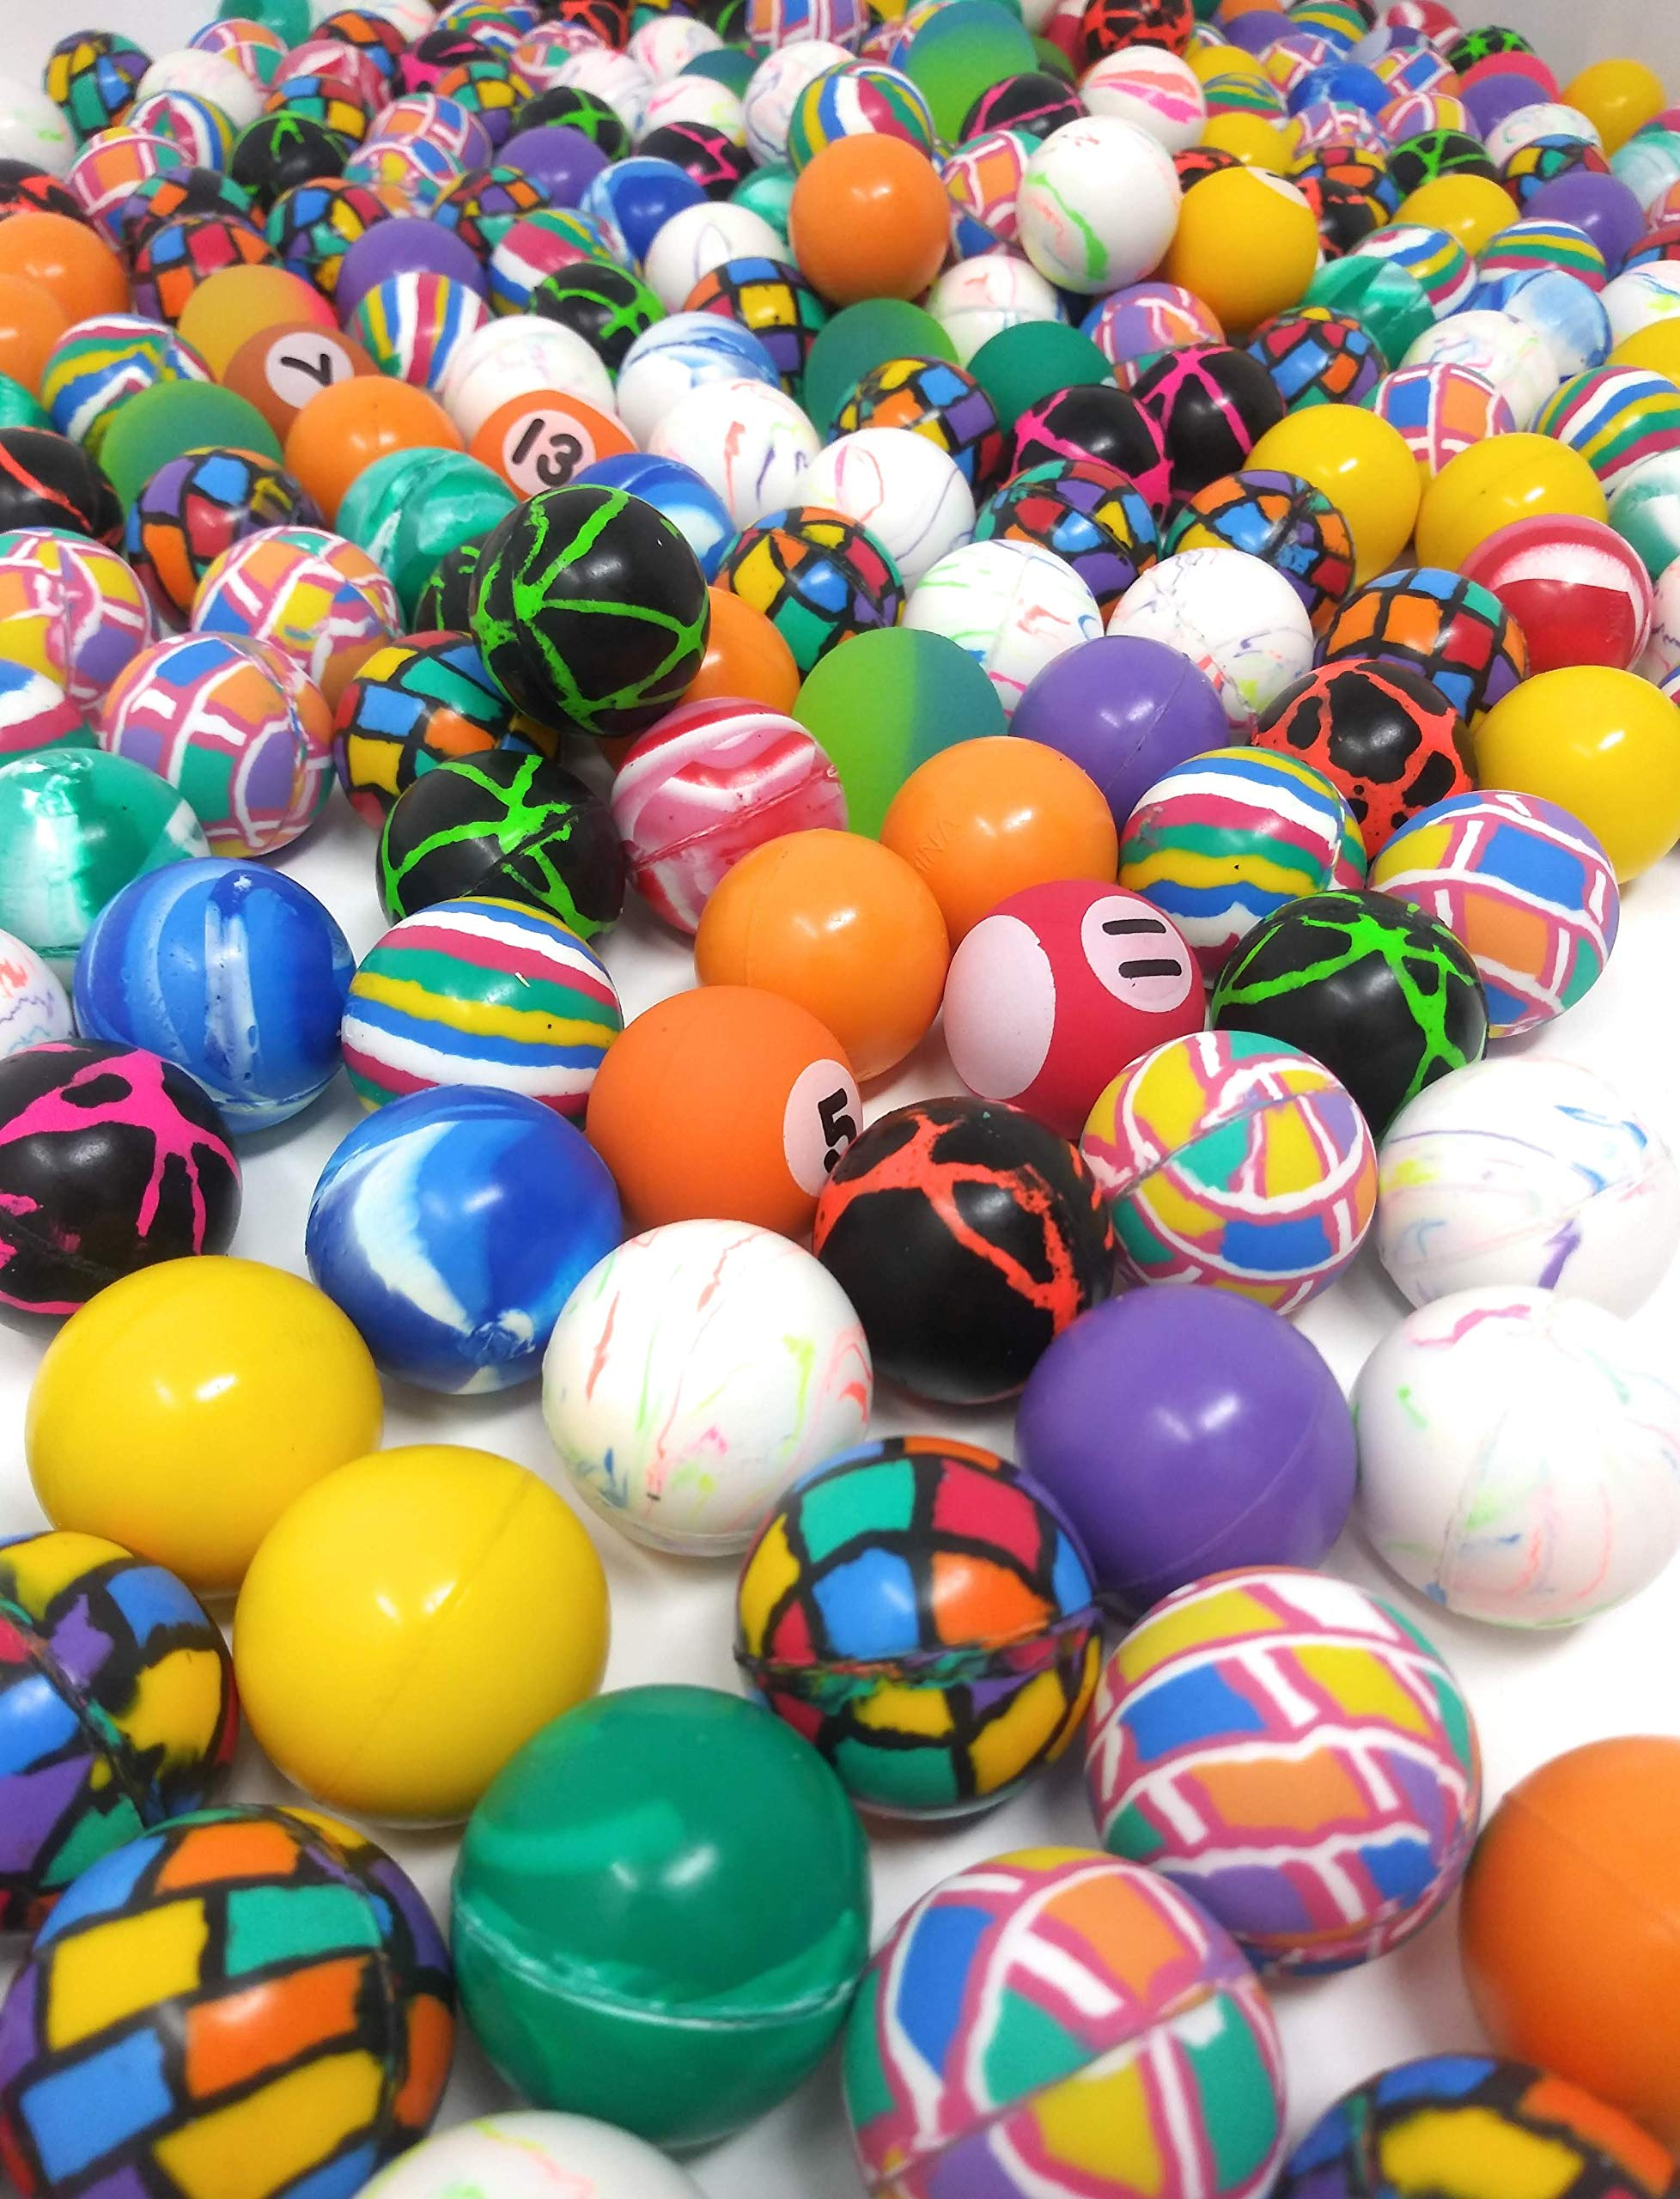 4E's Novelty Mega Bulk Assortment of 250 Bouncy Super Balls Mix for Kids, High Bouncing Swirl Rubber Balls, Great Bounce Party Favor Toys, Carnival Fun Prizes, for Boys and Girls 1'' by 4E's Novelty (Image #3)